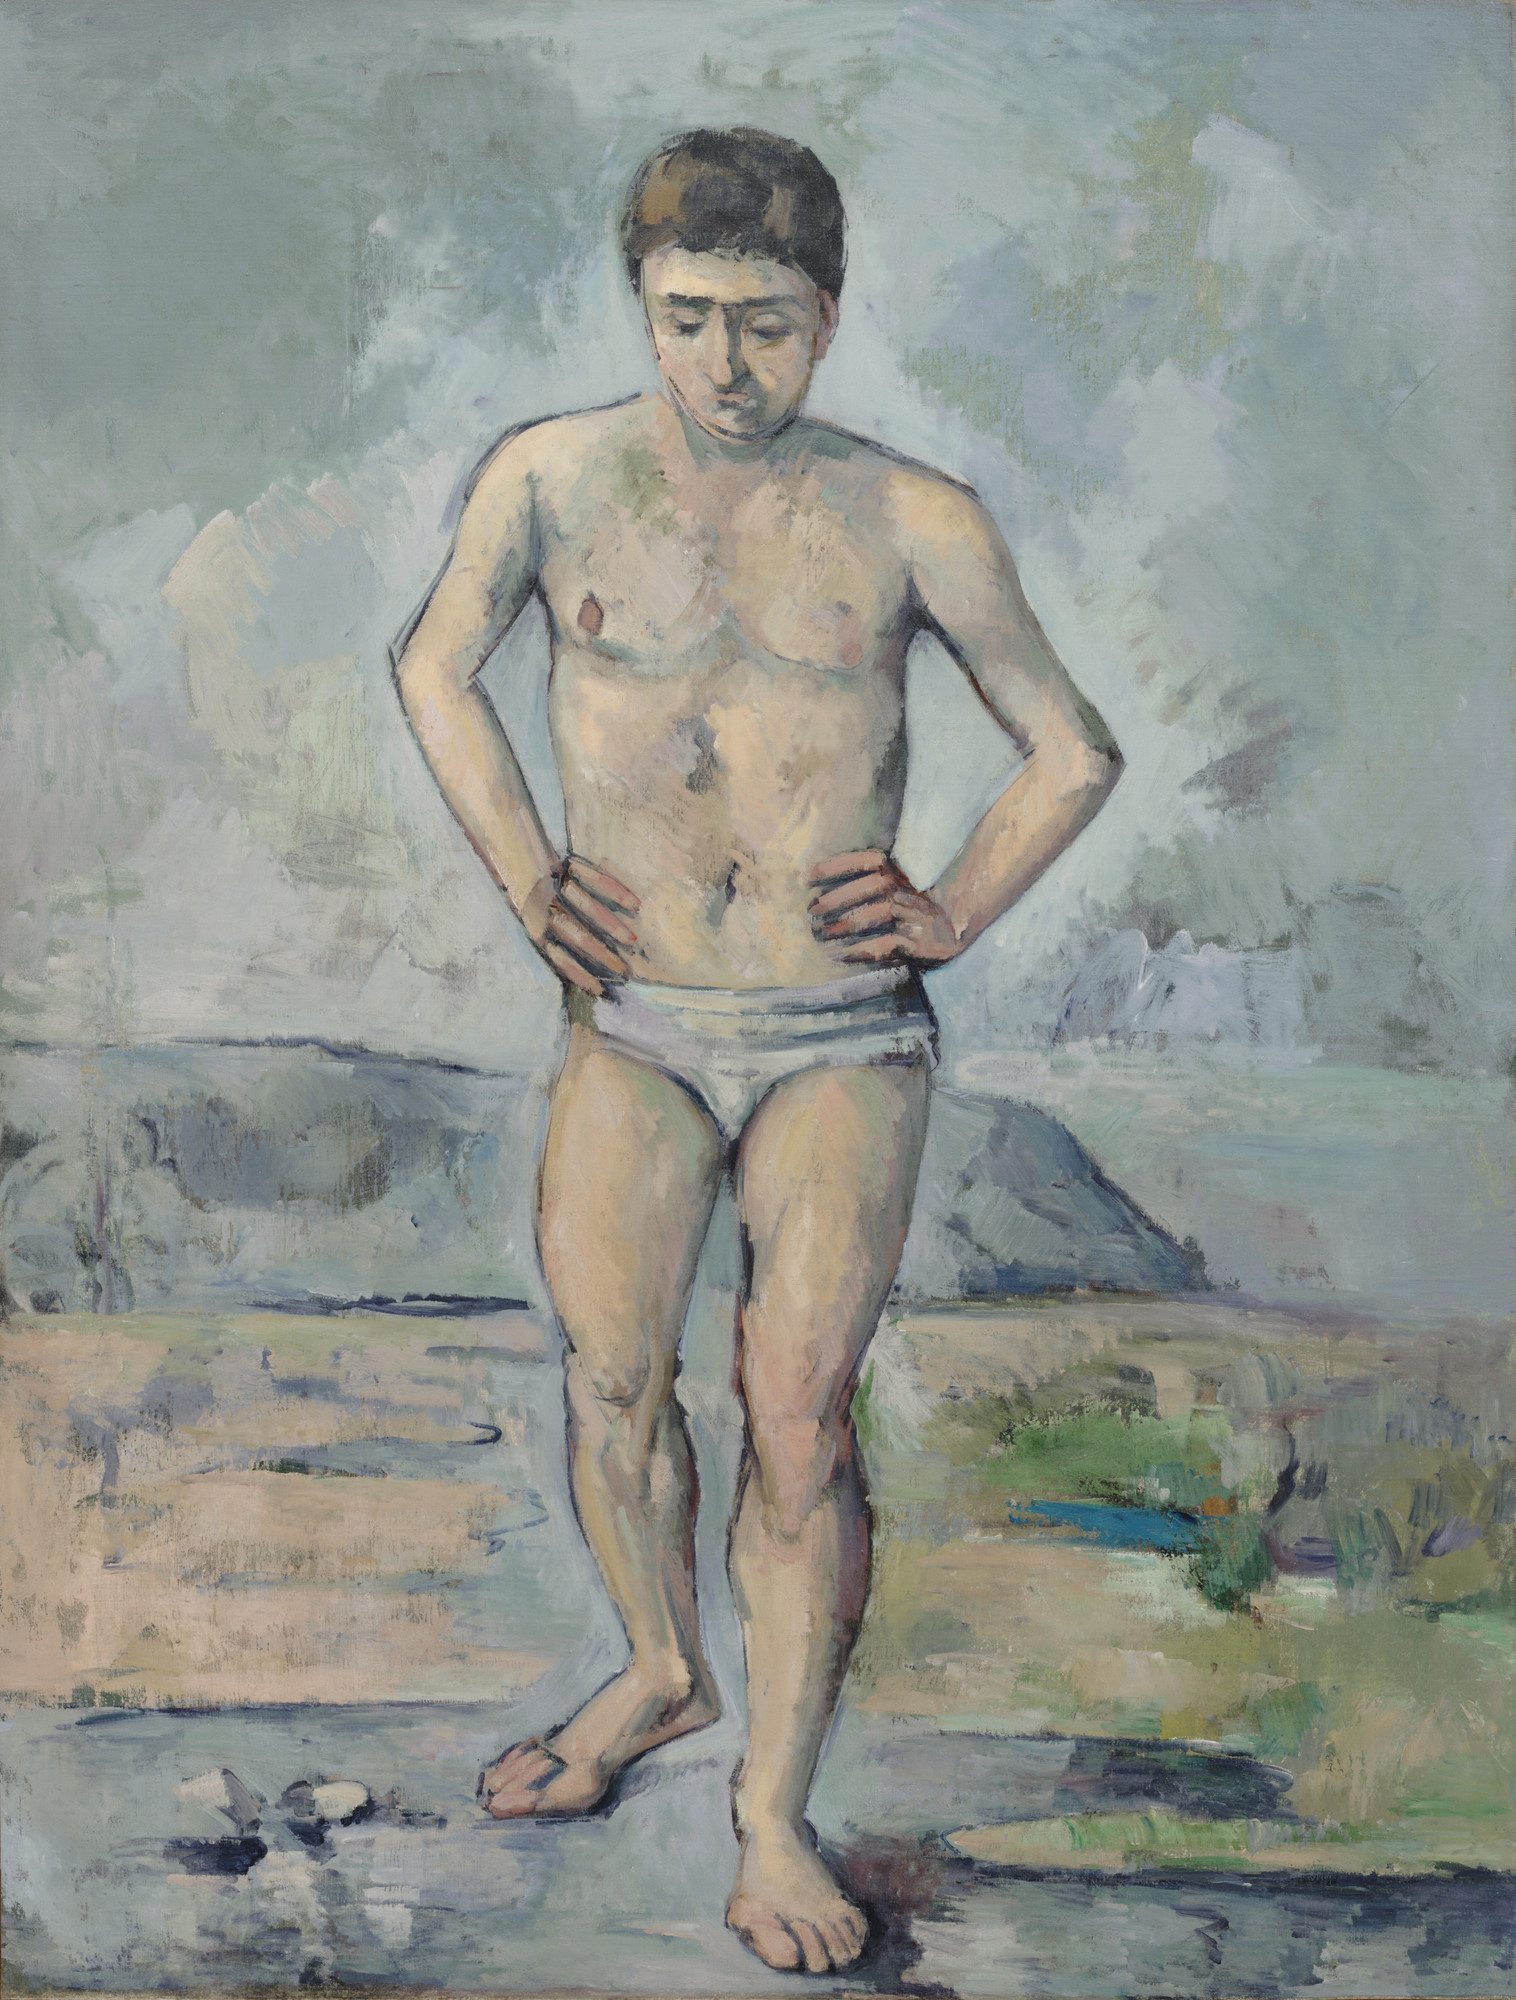 Paul Cézanne. The Bather. c. 1885